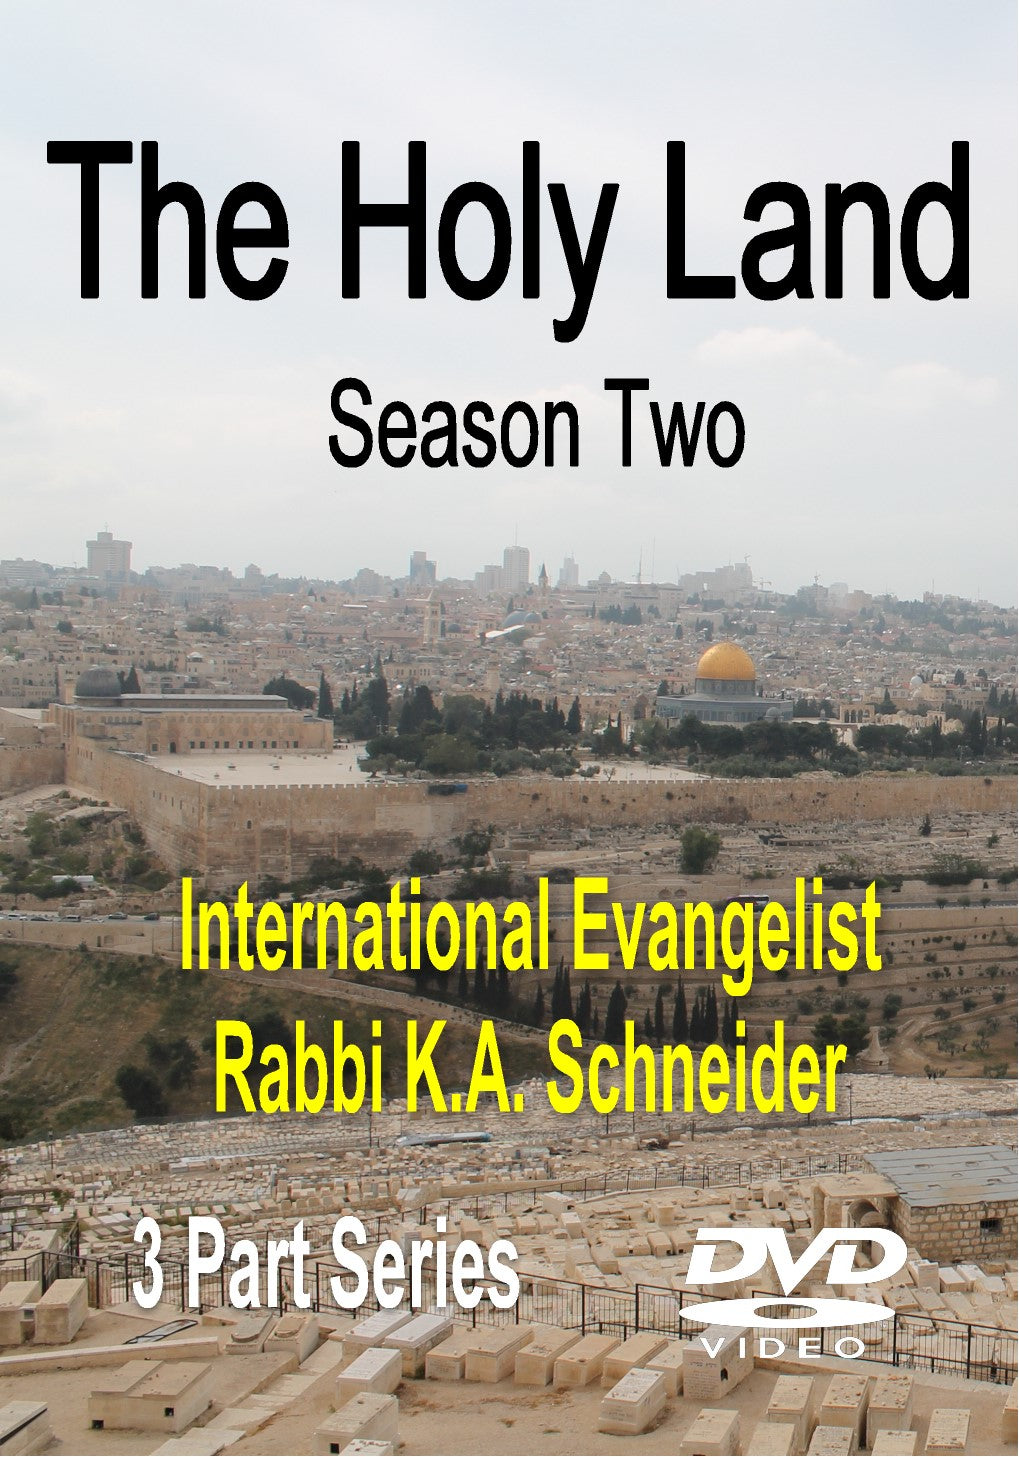 The Holy Land Season Two